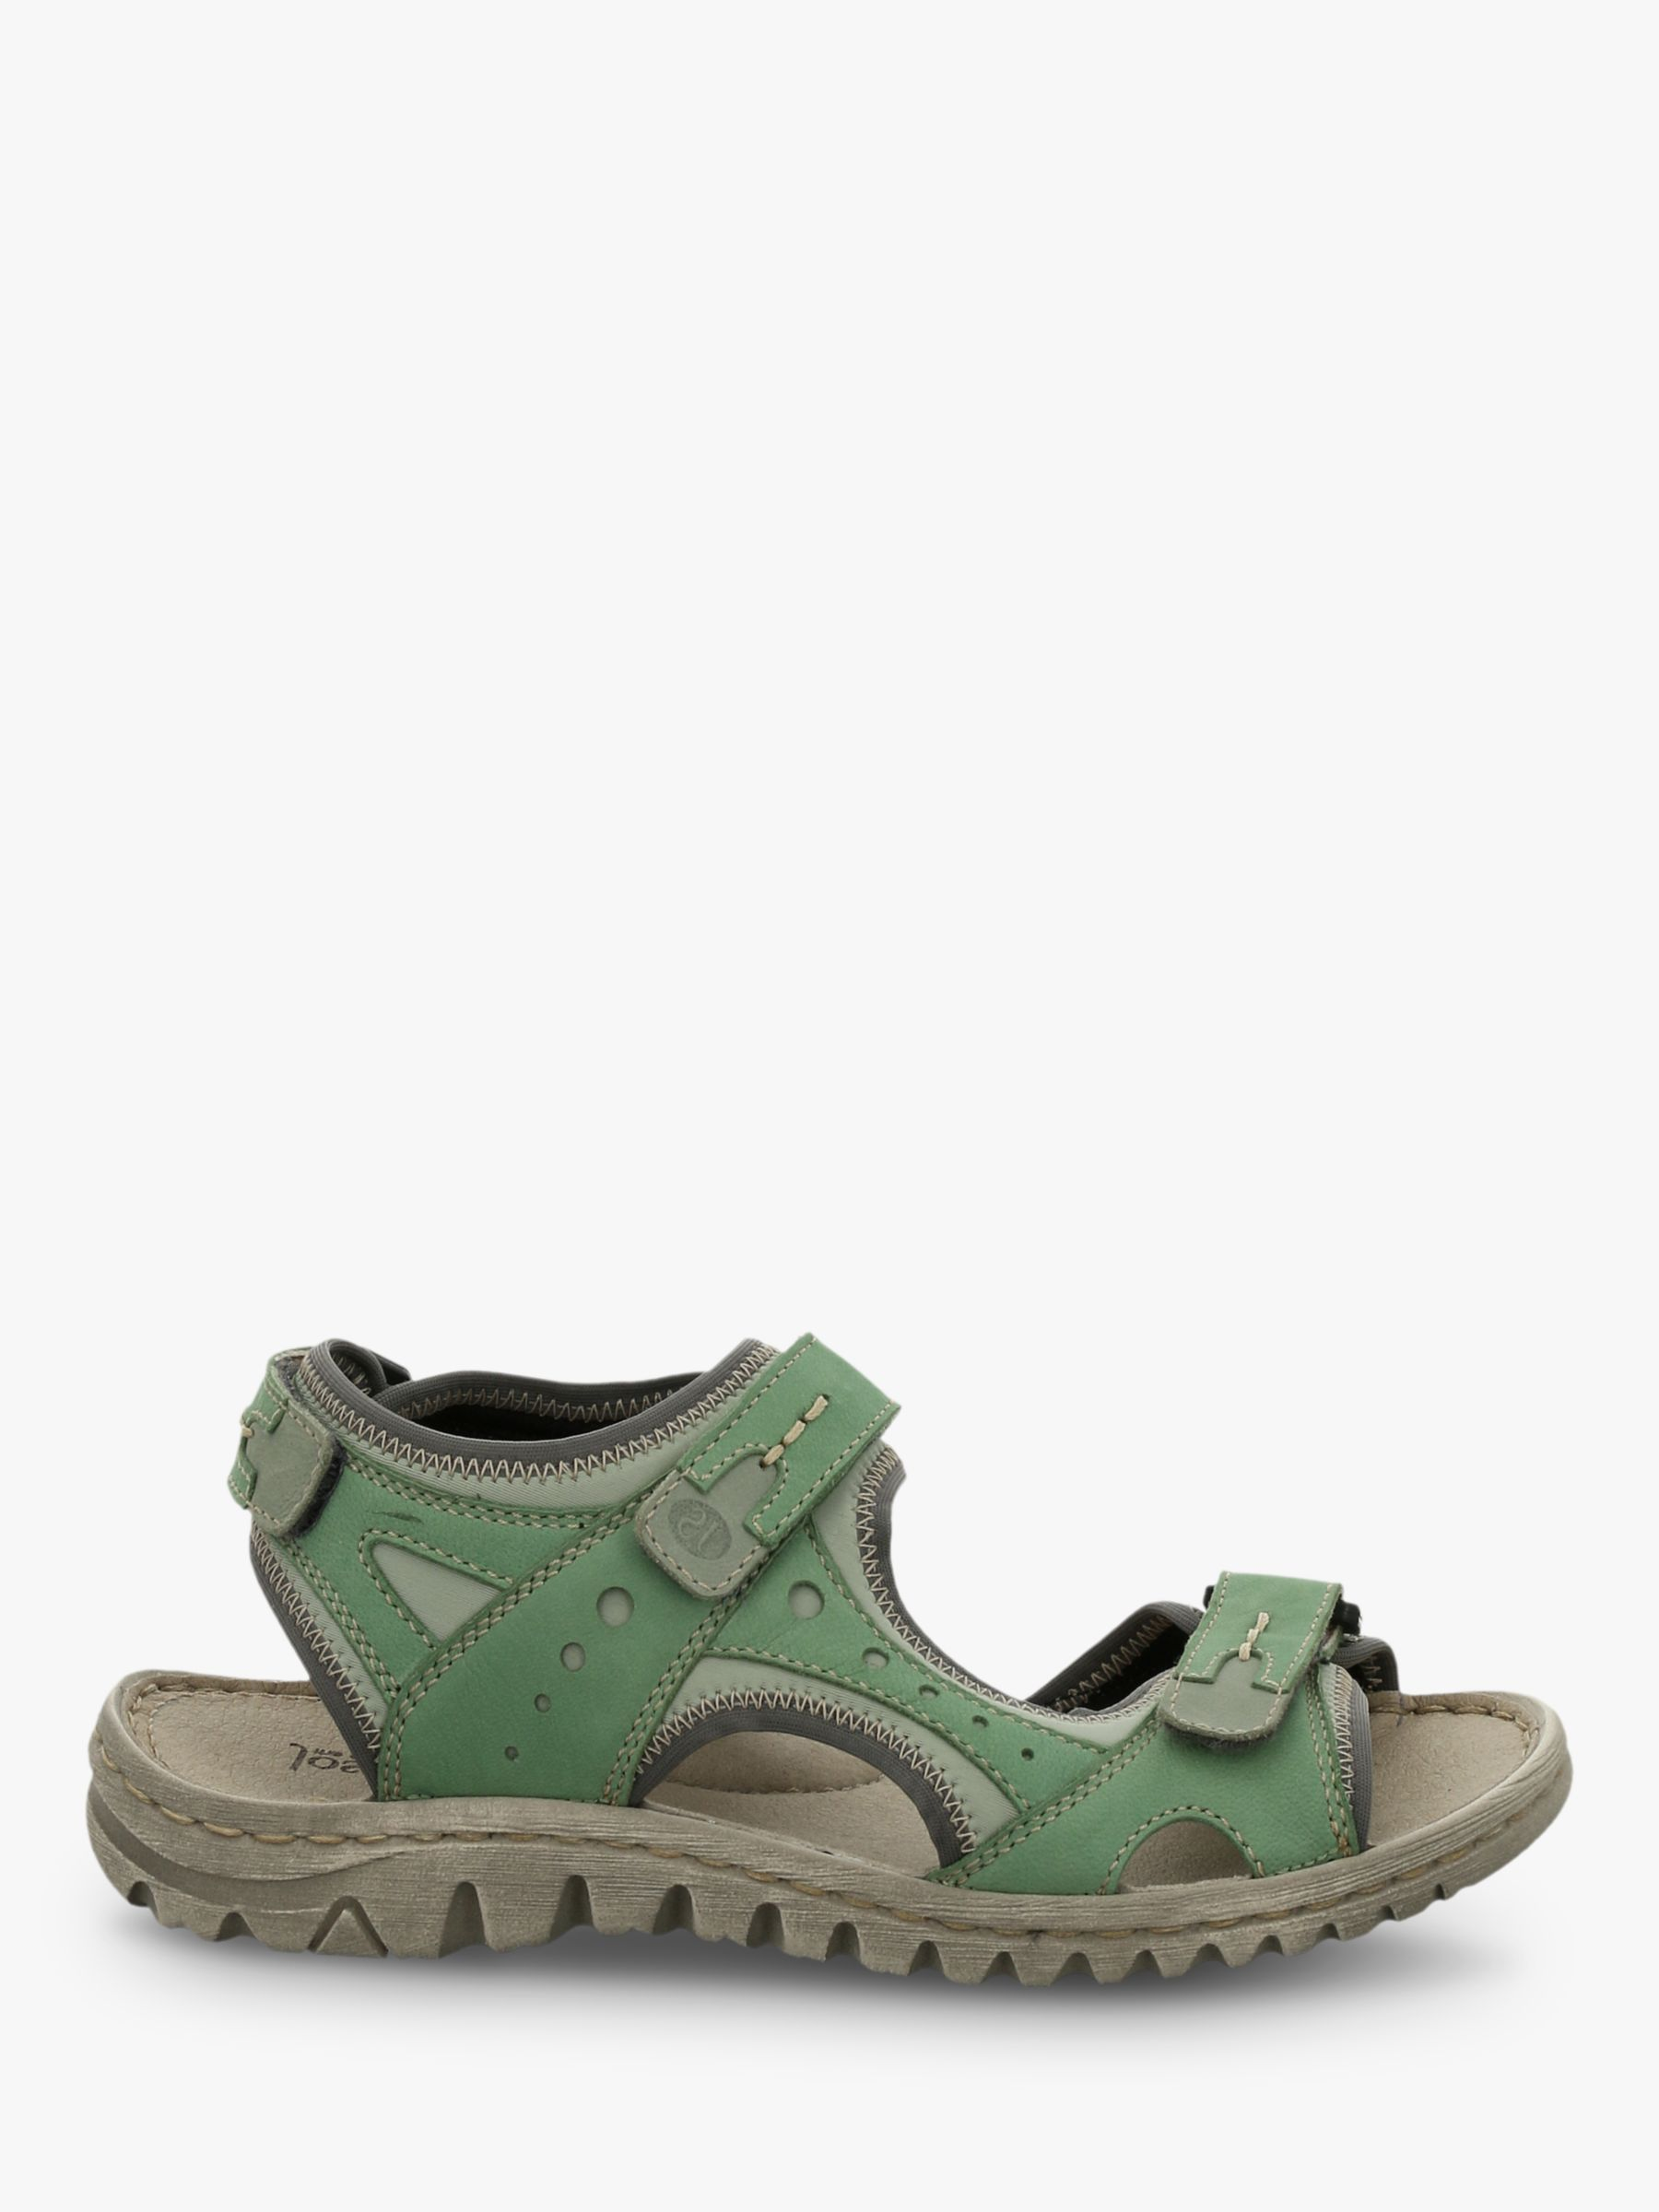 Josef Seibel Lucia 17 Triple Strap Sandals, Green Mix